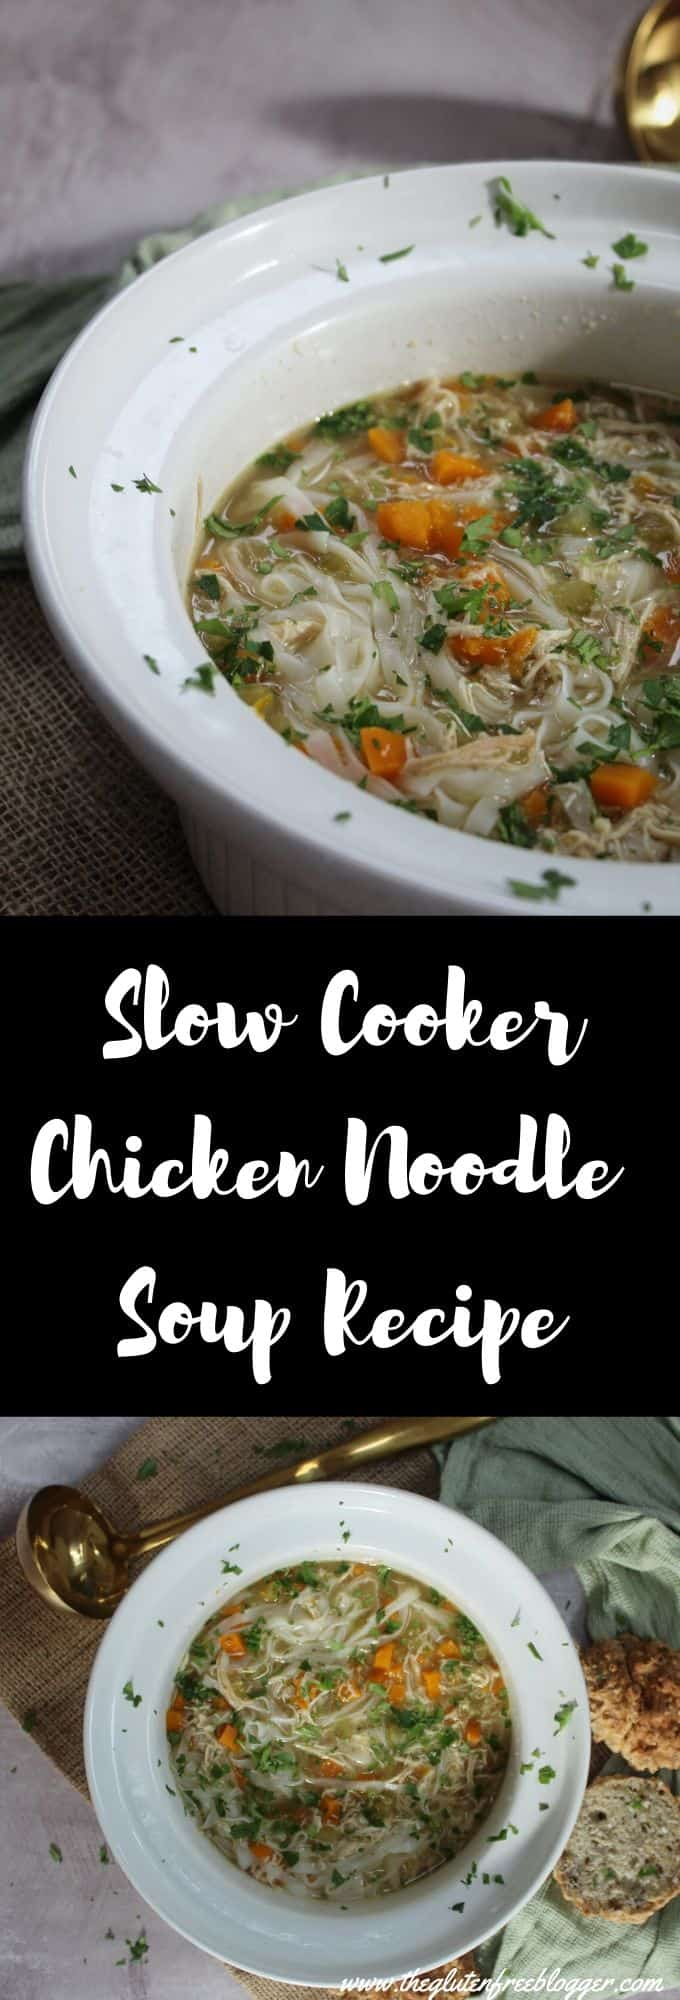 gluten free slow cooker chicken noodle soup recipe easy slow cook dinner ideas meal prep batch cooking lunch